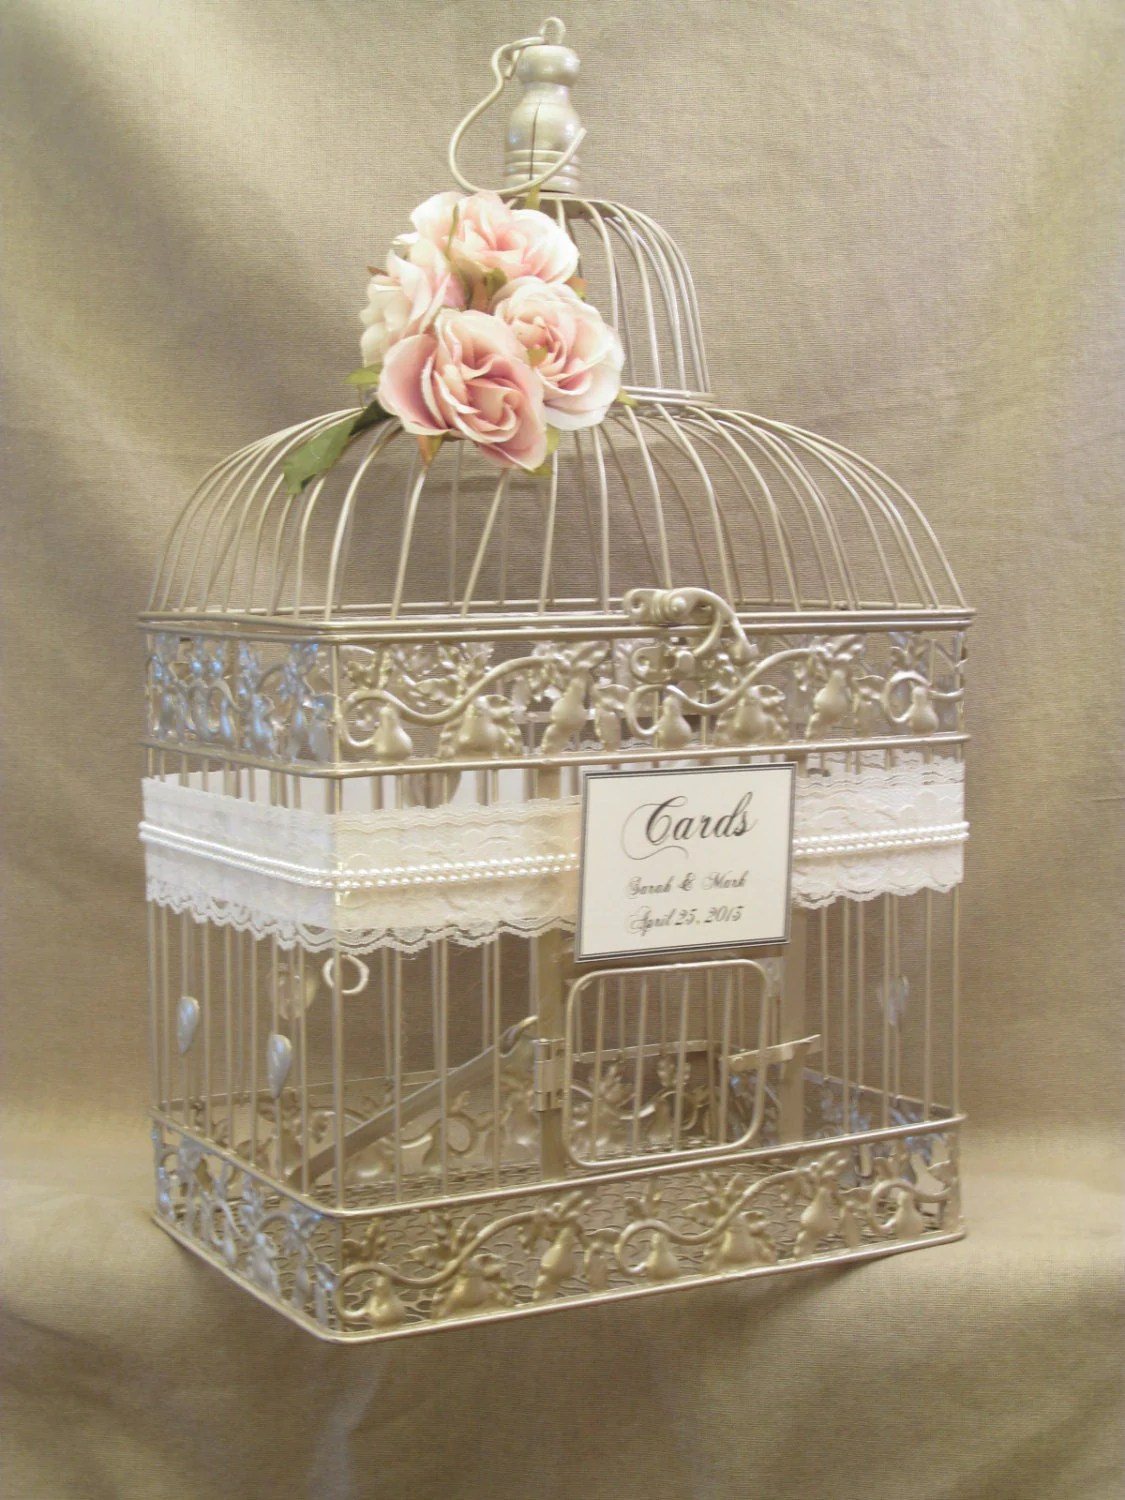 Awesome Bird Cages For Wedding Cards Pictures Styles Ideas 2018